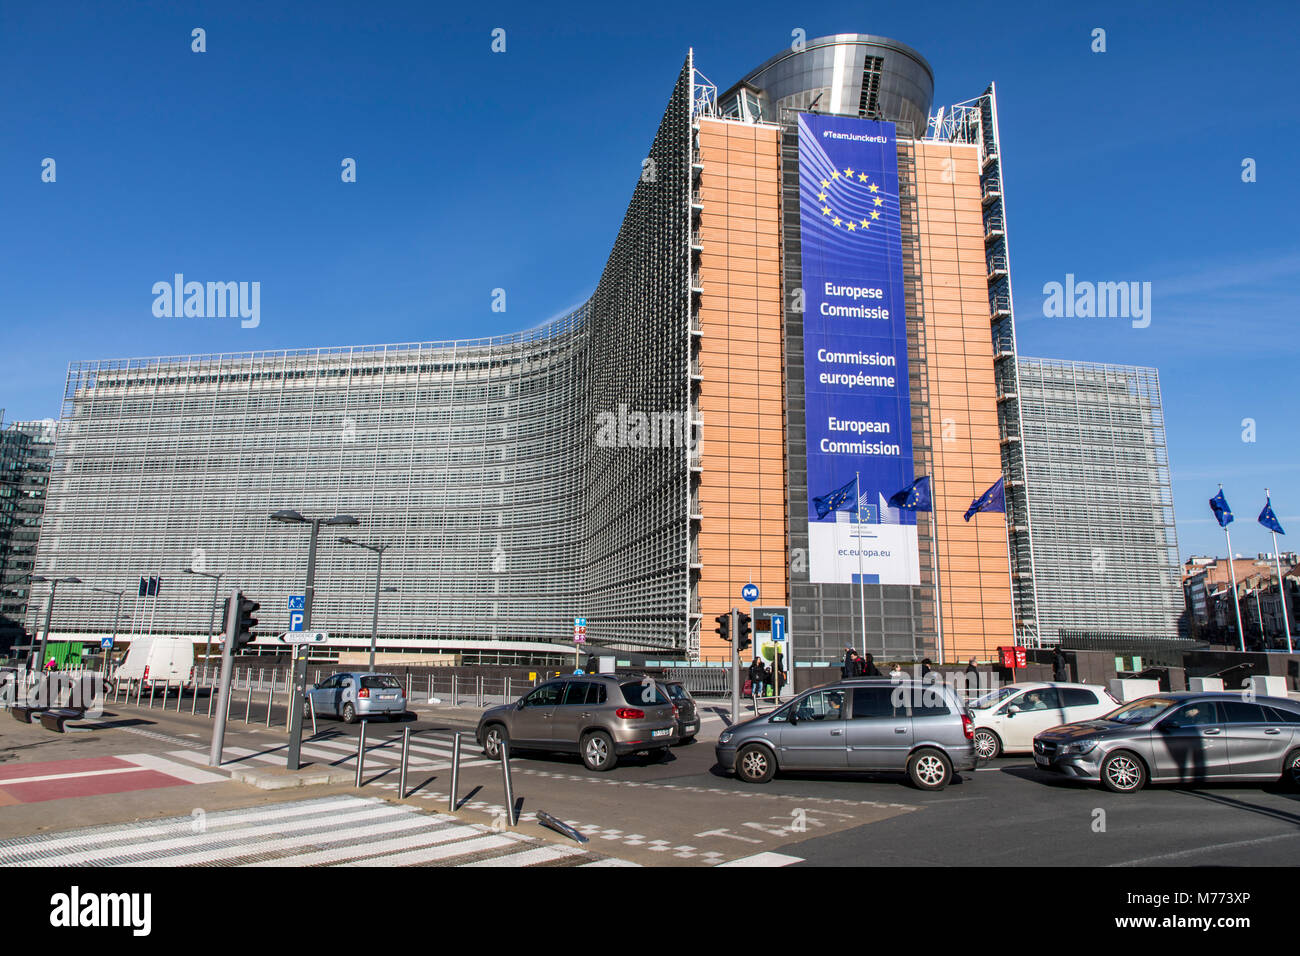 European Commission building, Berlaymont building, Brussels, Belgium, - Stock Image